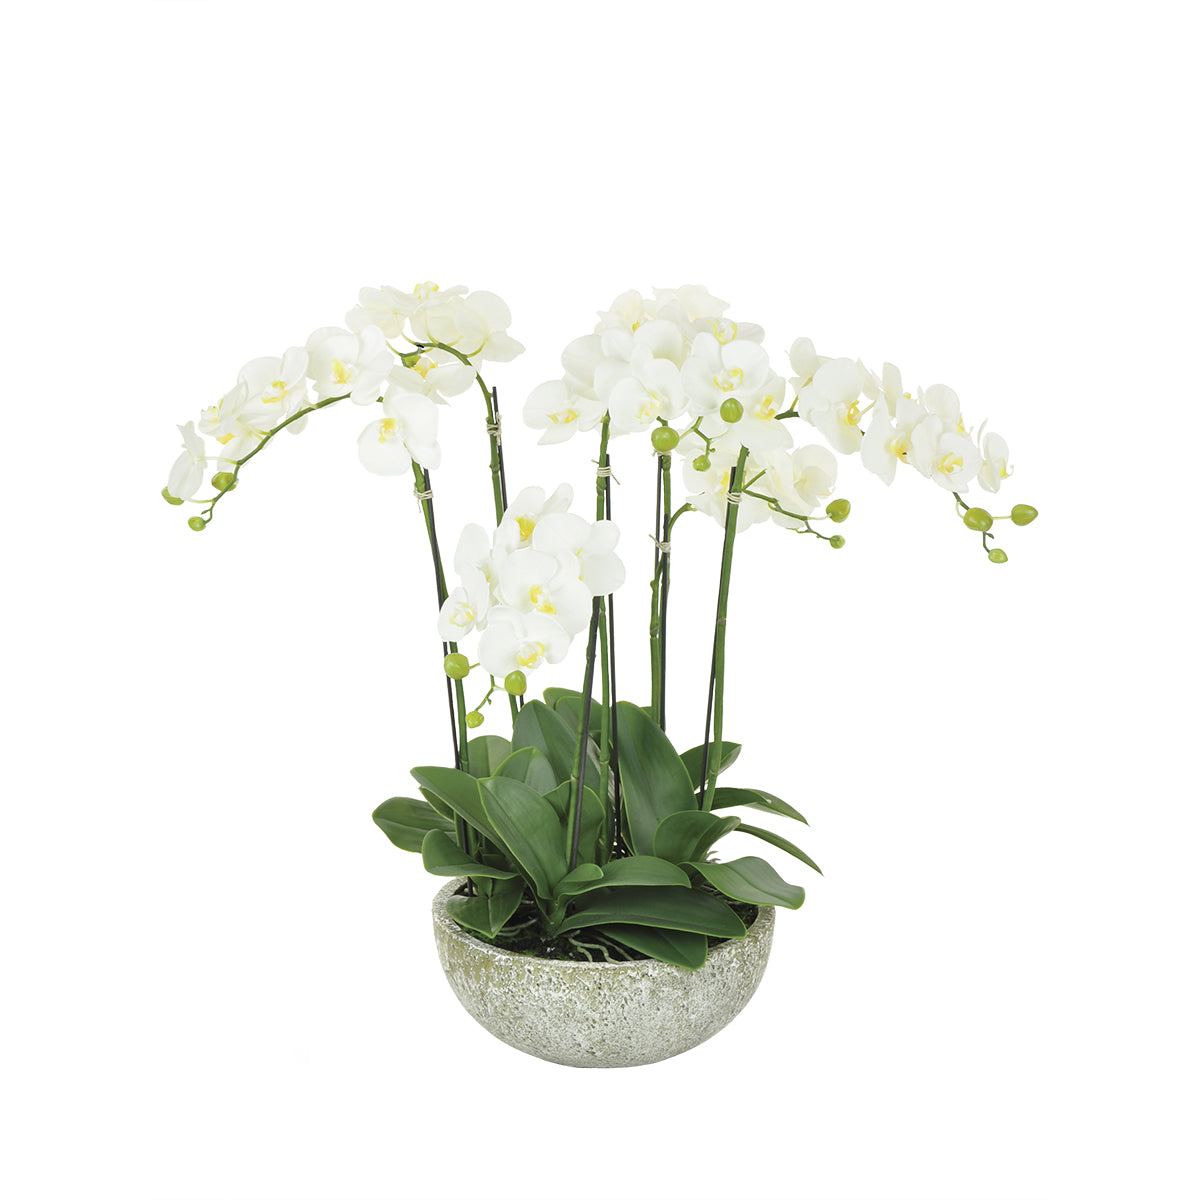 Medium Potted Orchid Stone by Sophie Allport